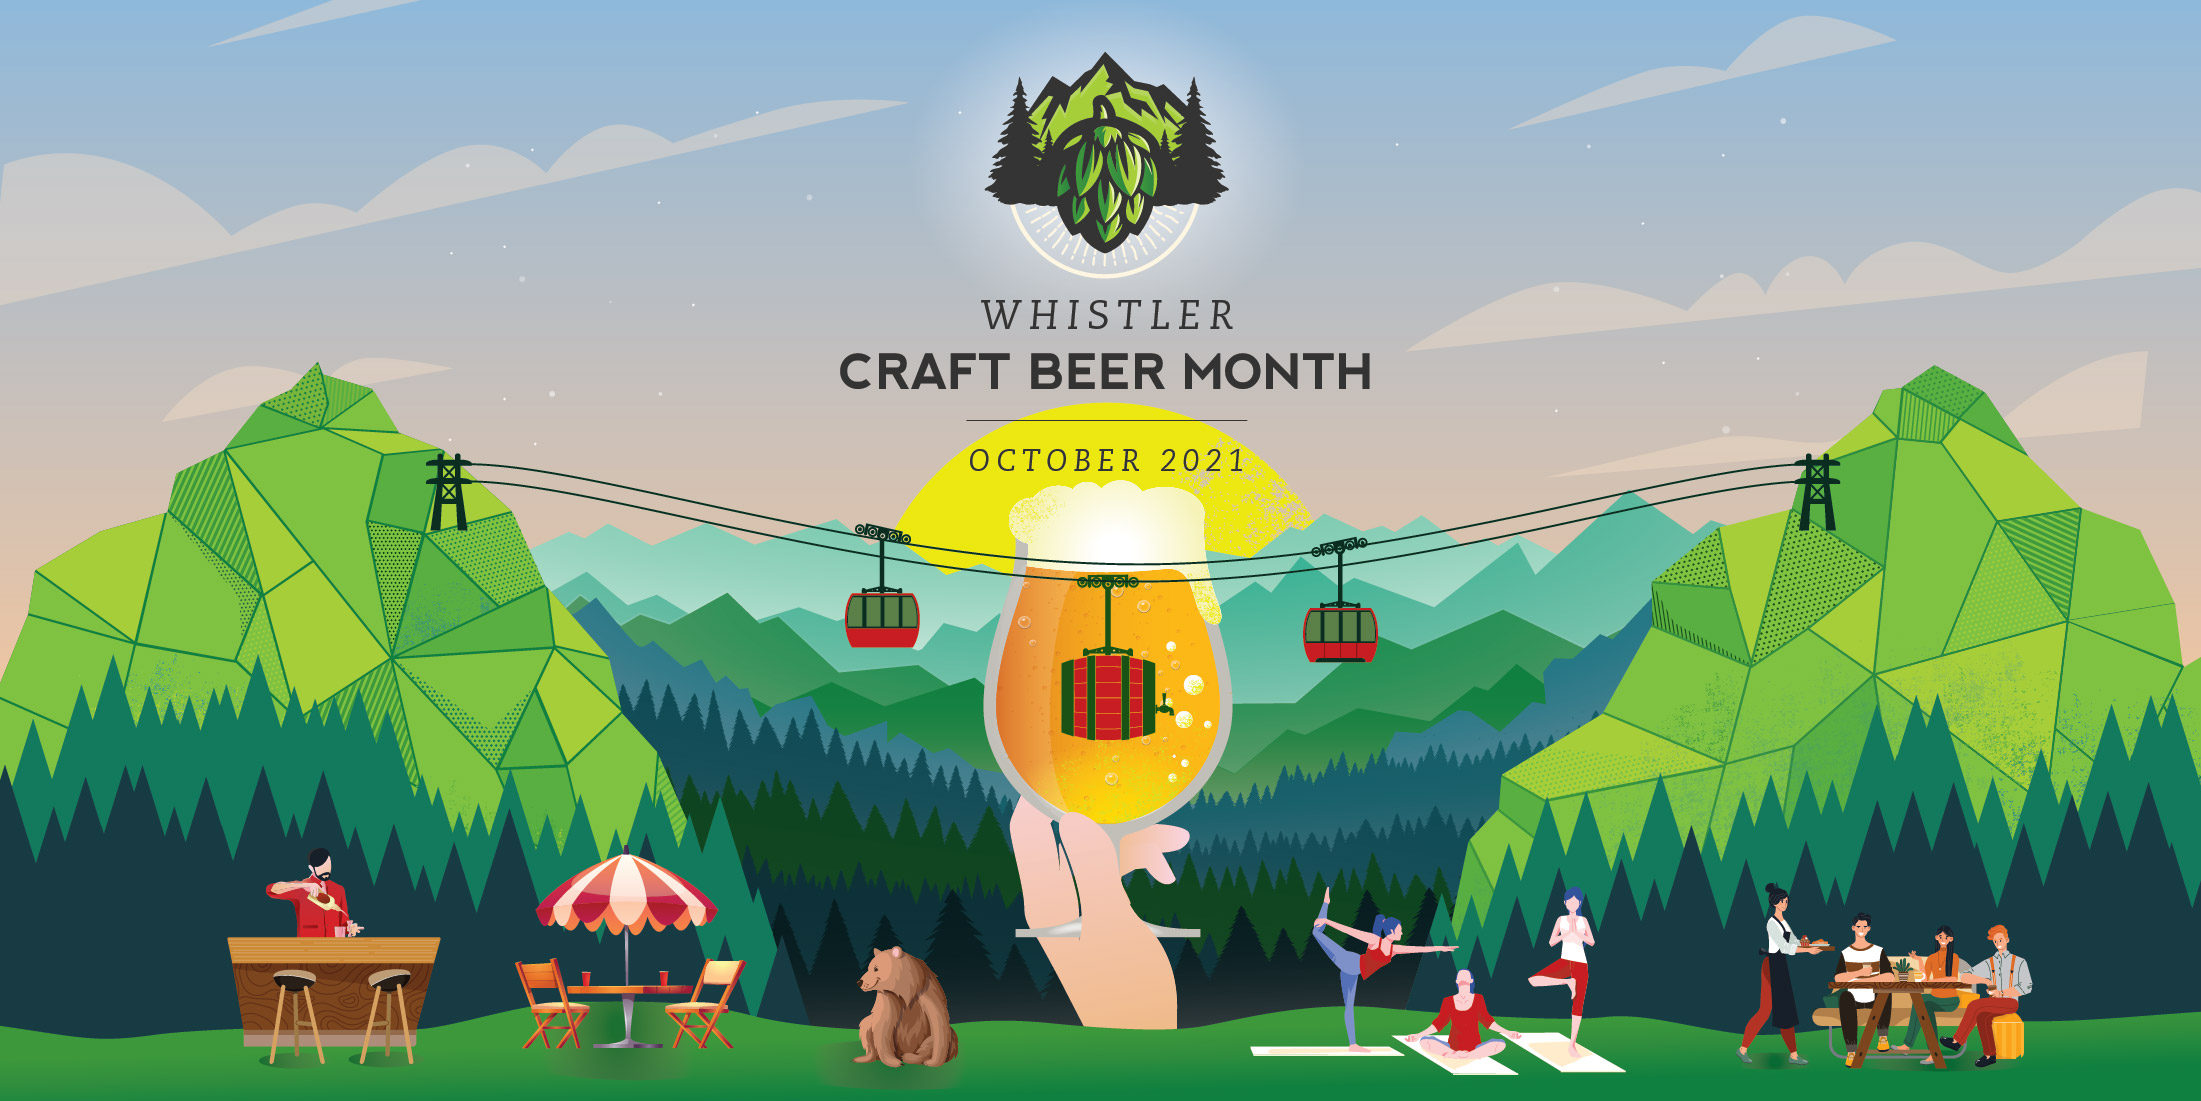 Whistler Craft Beer Month